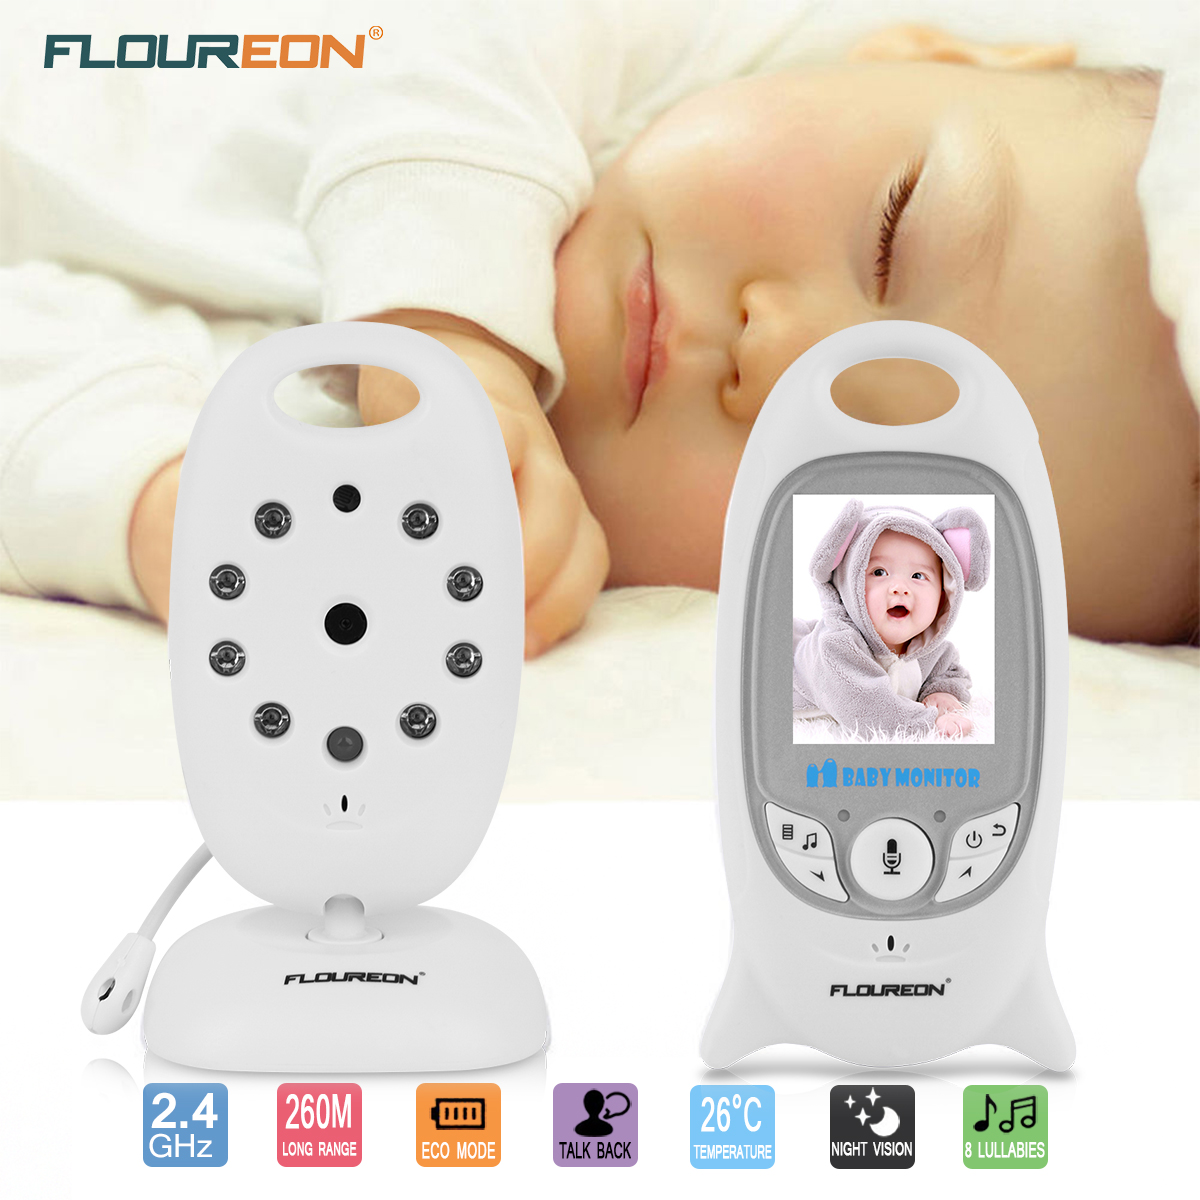 Baby Monitor, Video Baby Monitor with Camera- Wireles Video Monitor for Baby Safety- with Infrared Night... by FLOUREON